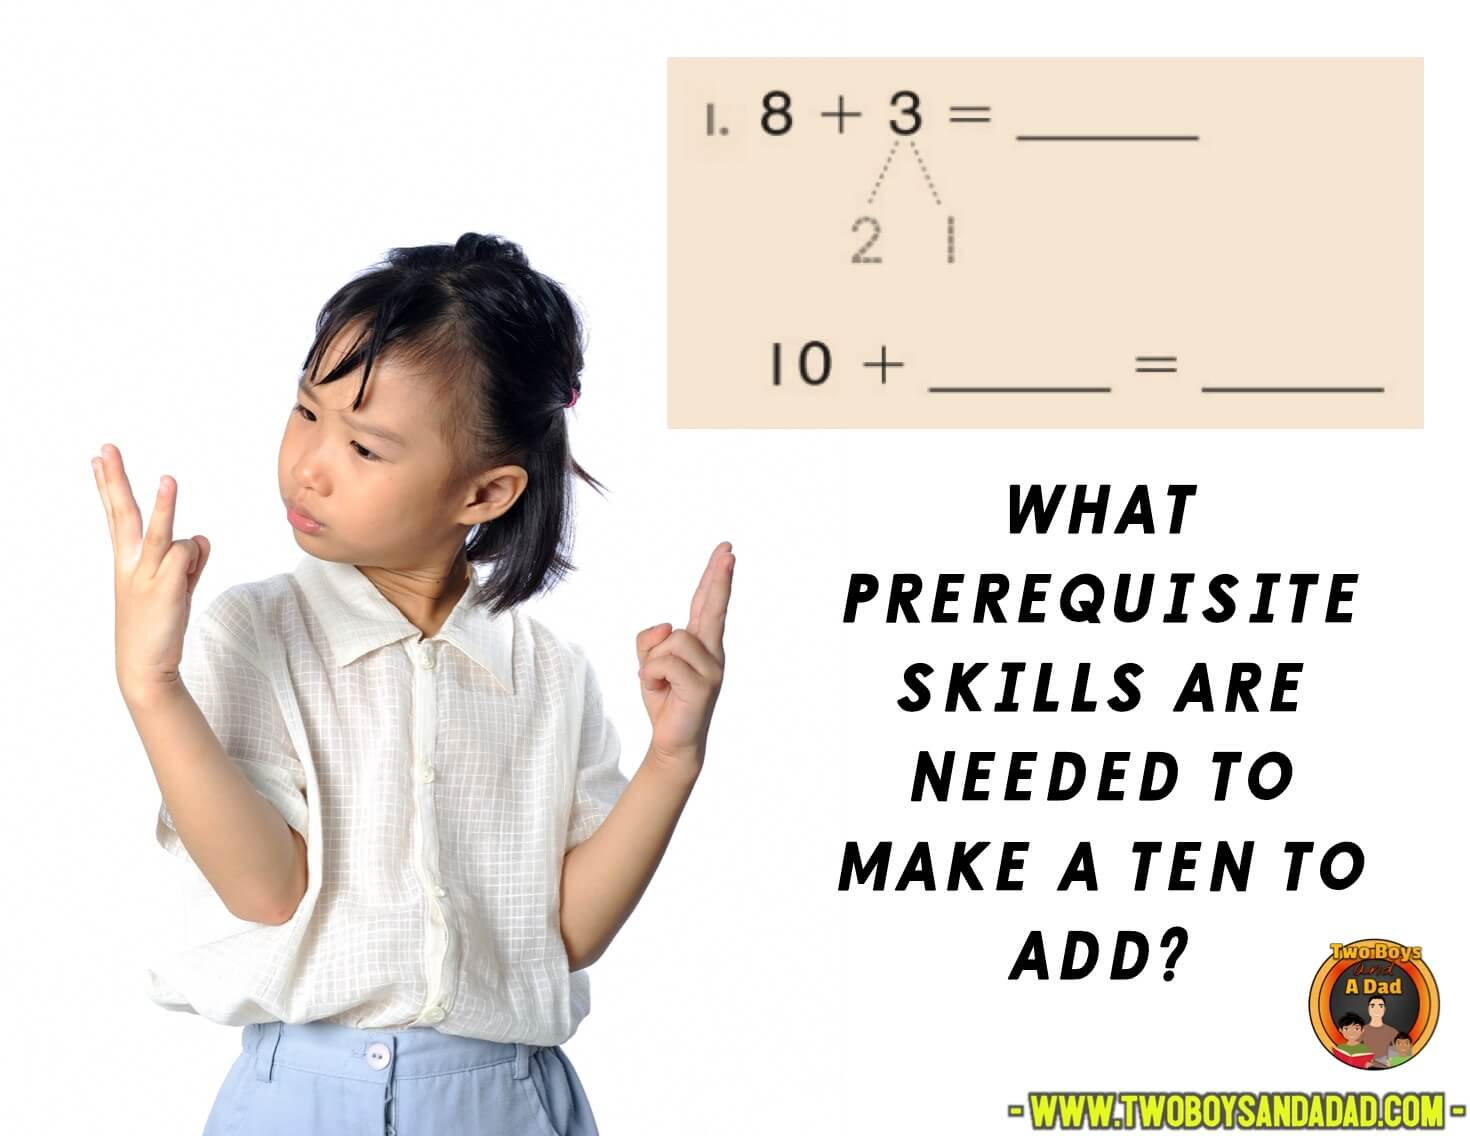 What skills do you need to make a ten?